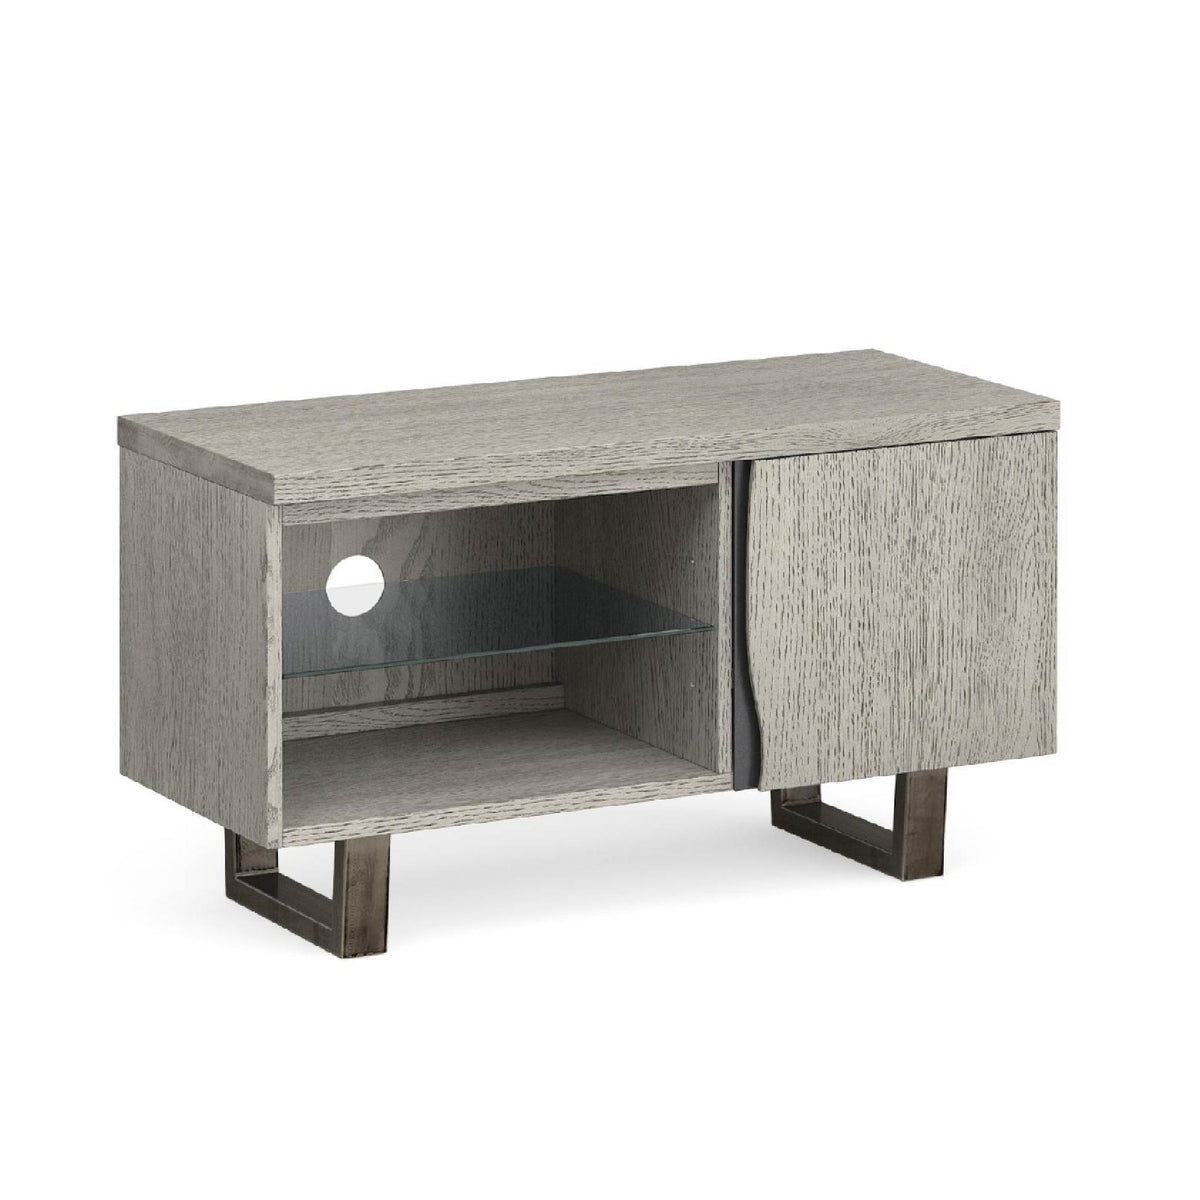 Soho Small 90 cm TV Stand with Glass Shelf by Roseland Furniture